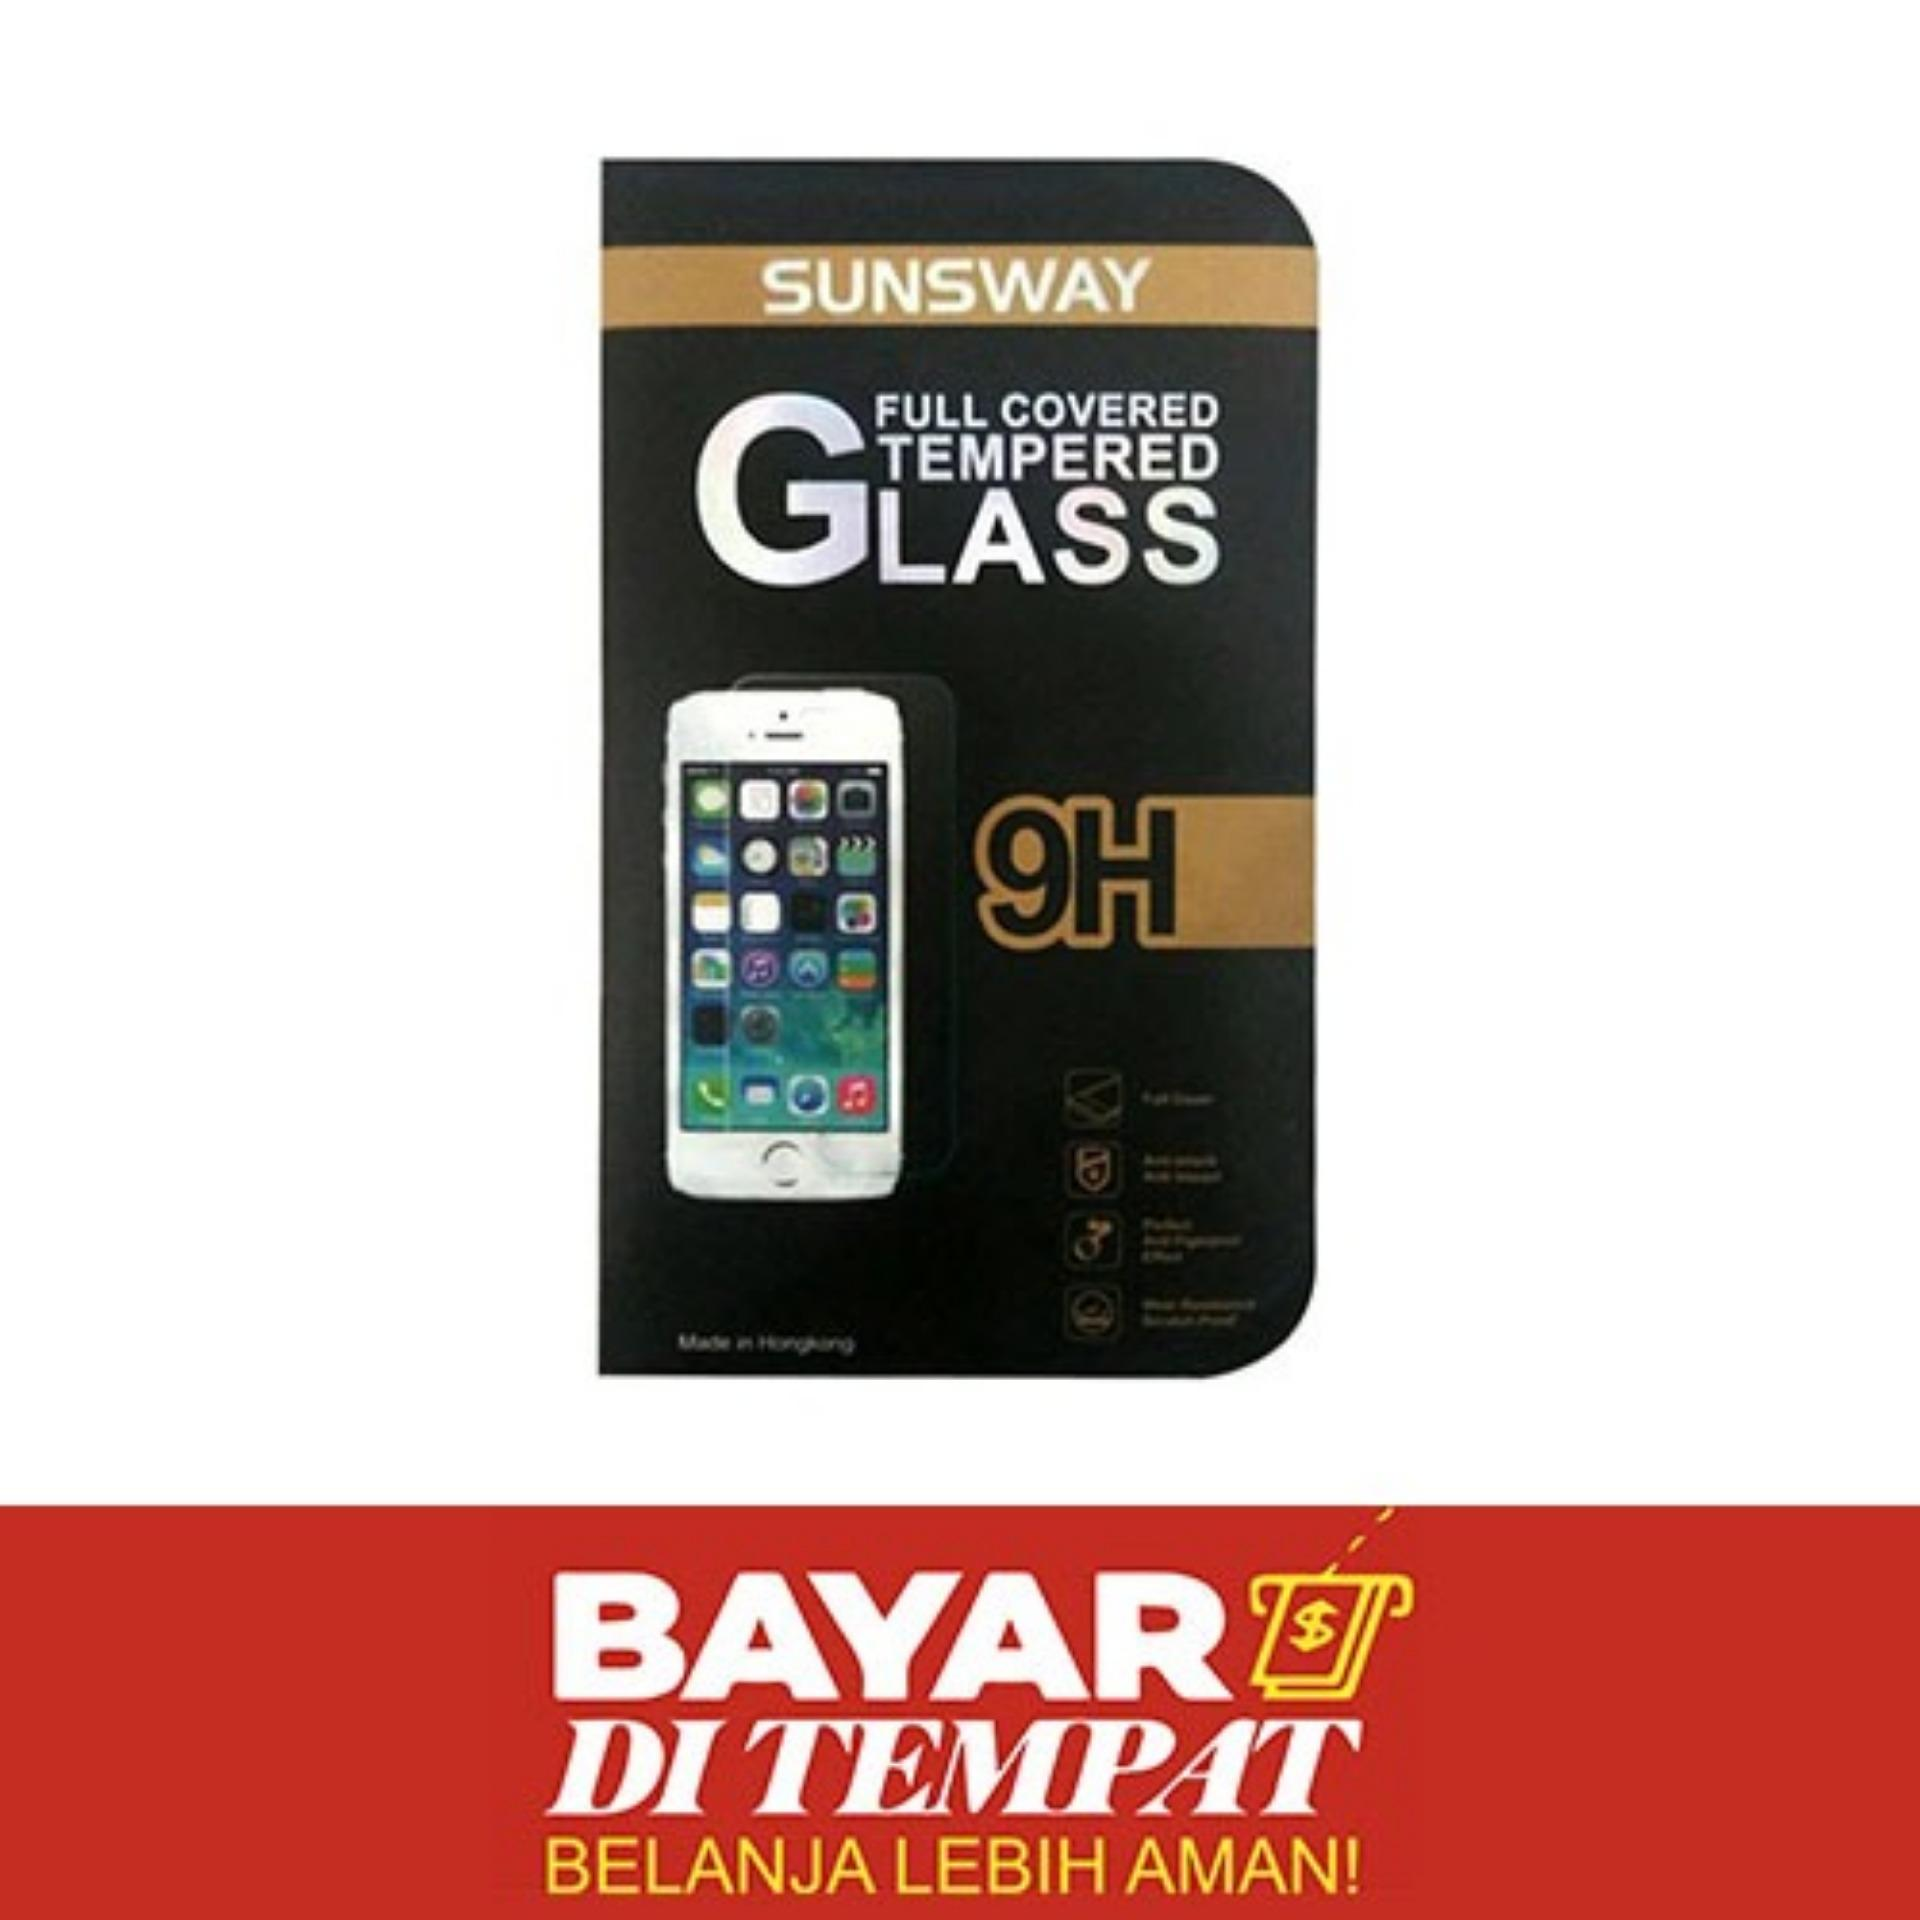 Tempered Glass For Samsung Galaxy J1 Mini V2 Sunsway 0,26mm + 2,5D By YGS Anti Gores Kaca High Quality Temepered Glas